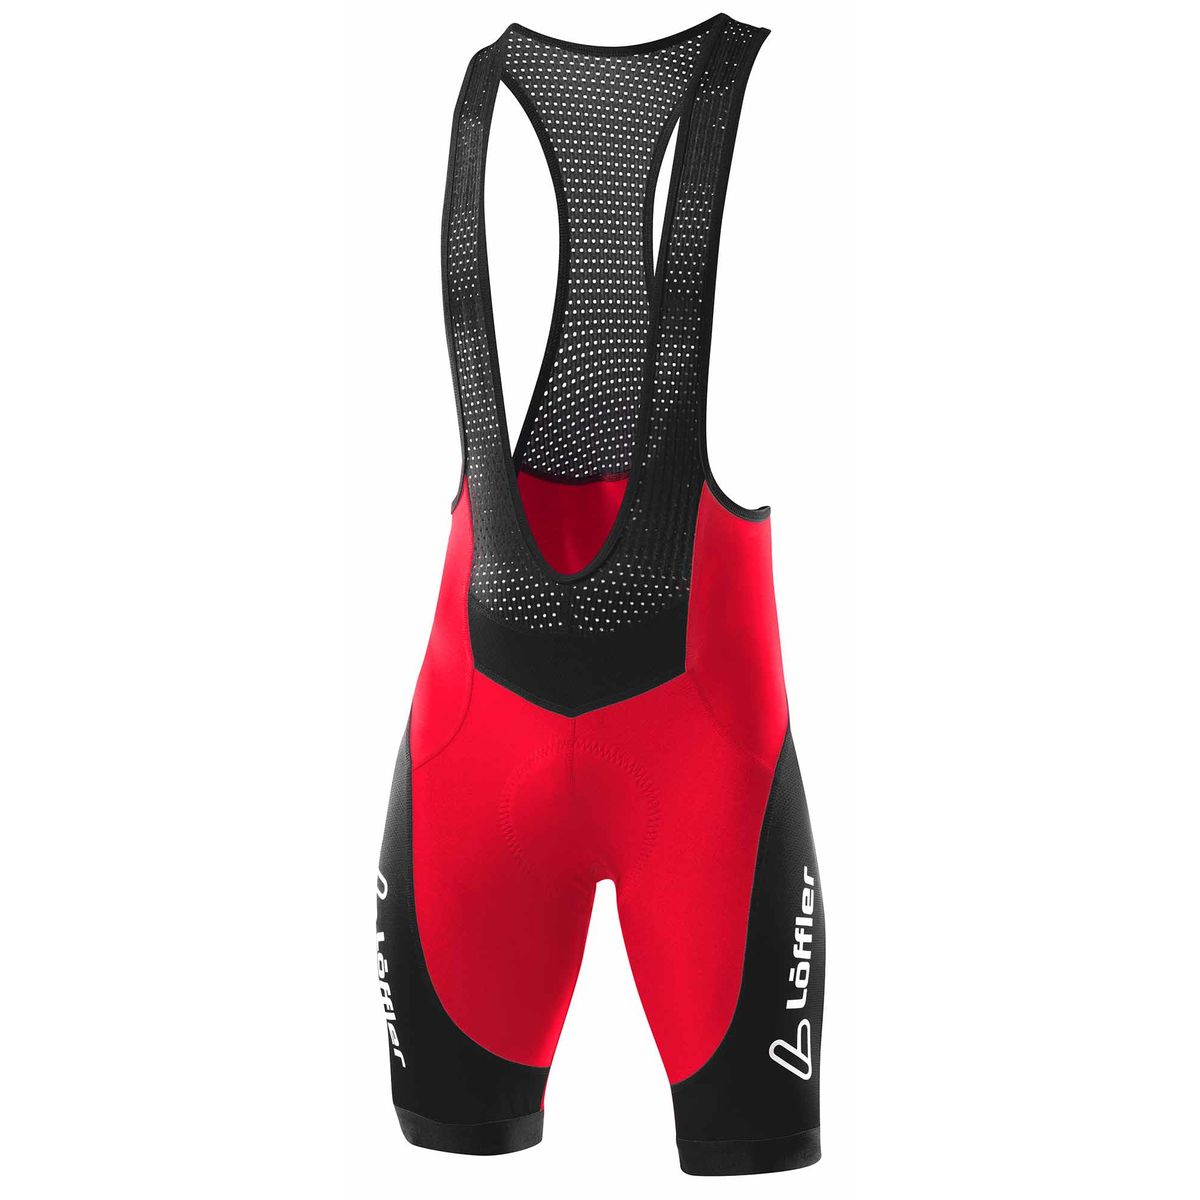 Men's BIB SHORTS WINNER